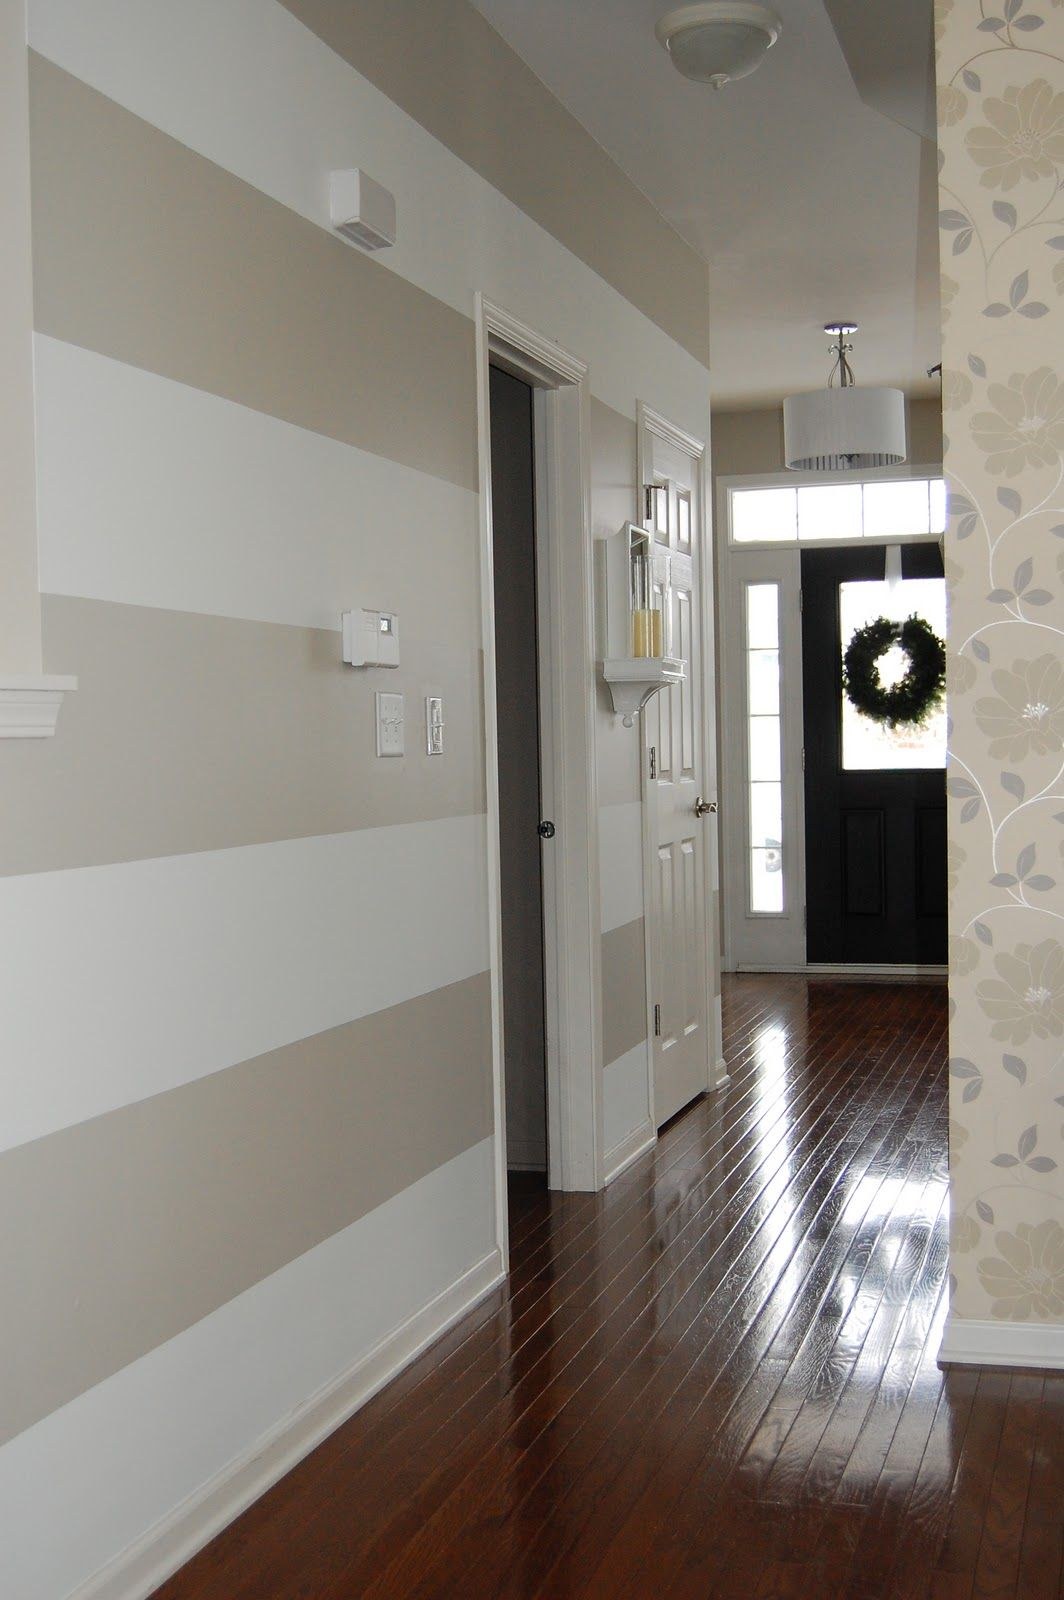 Benjamin moore revere pewter and benjamin moore white dove for Pictures for hallway walls